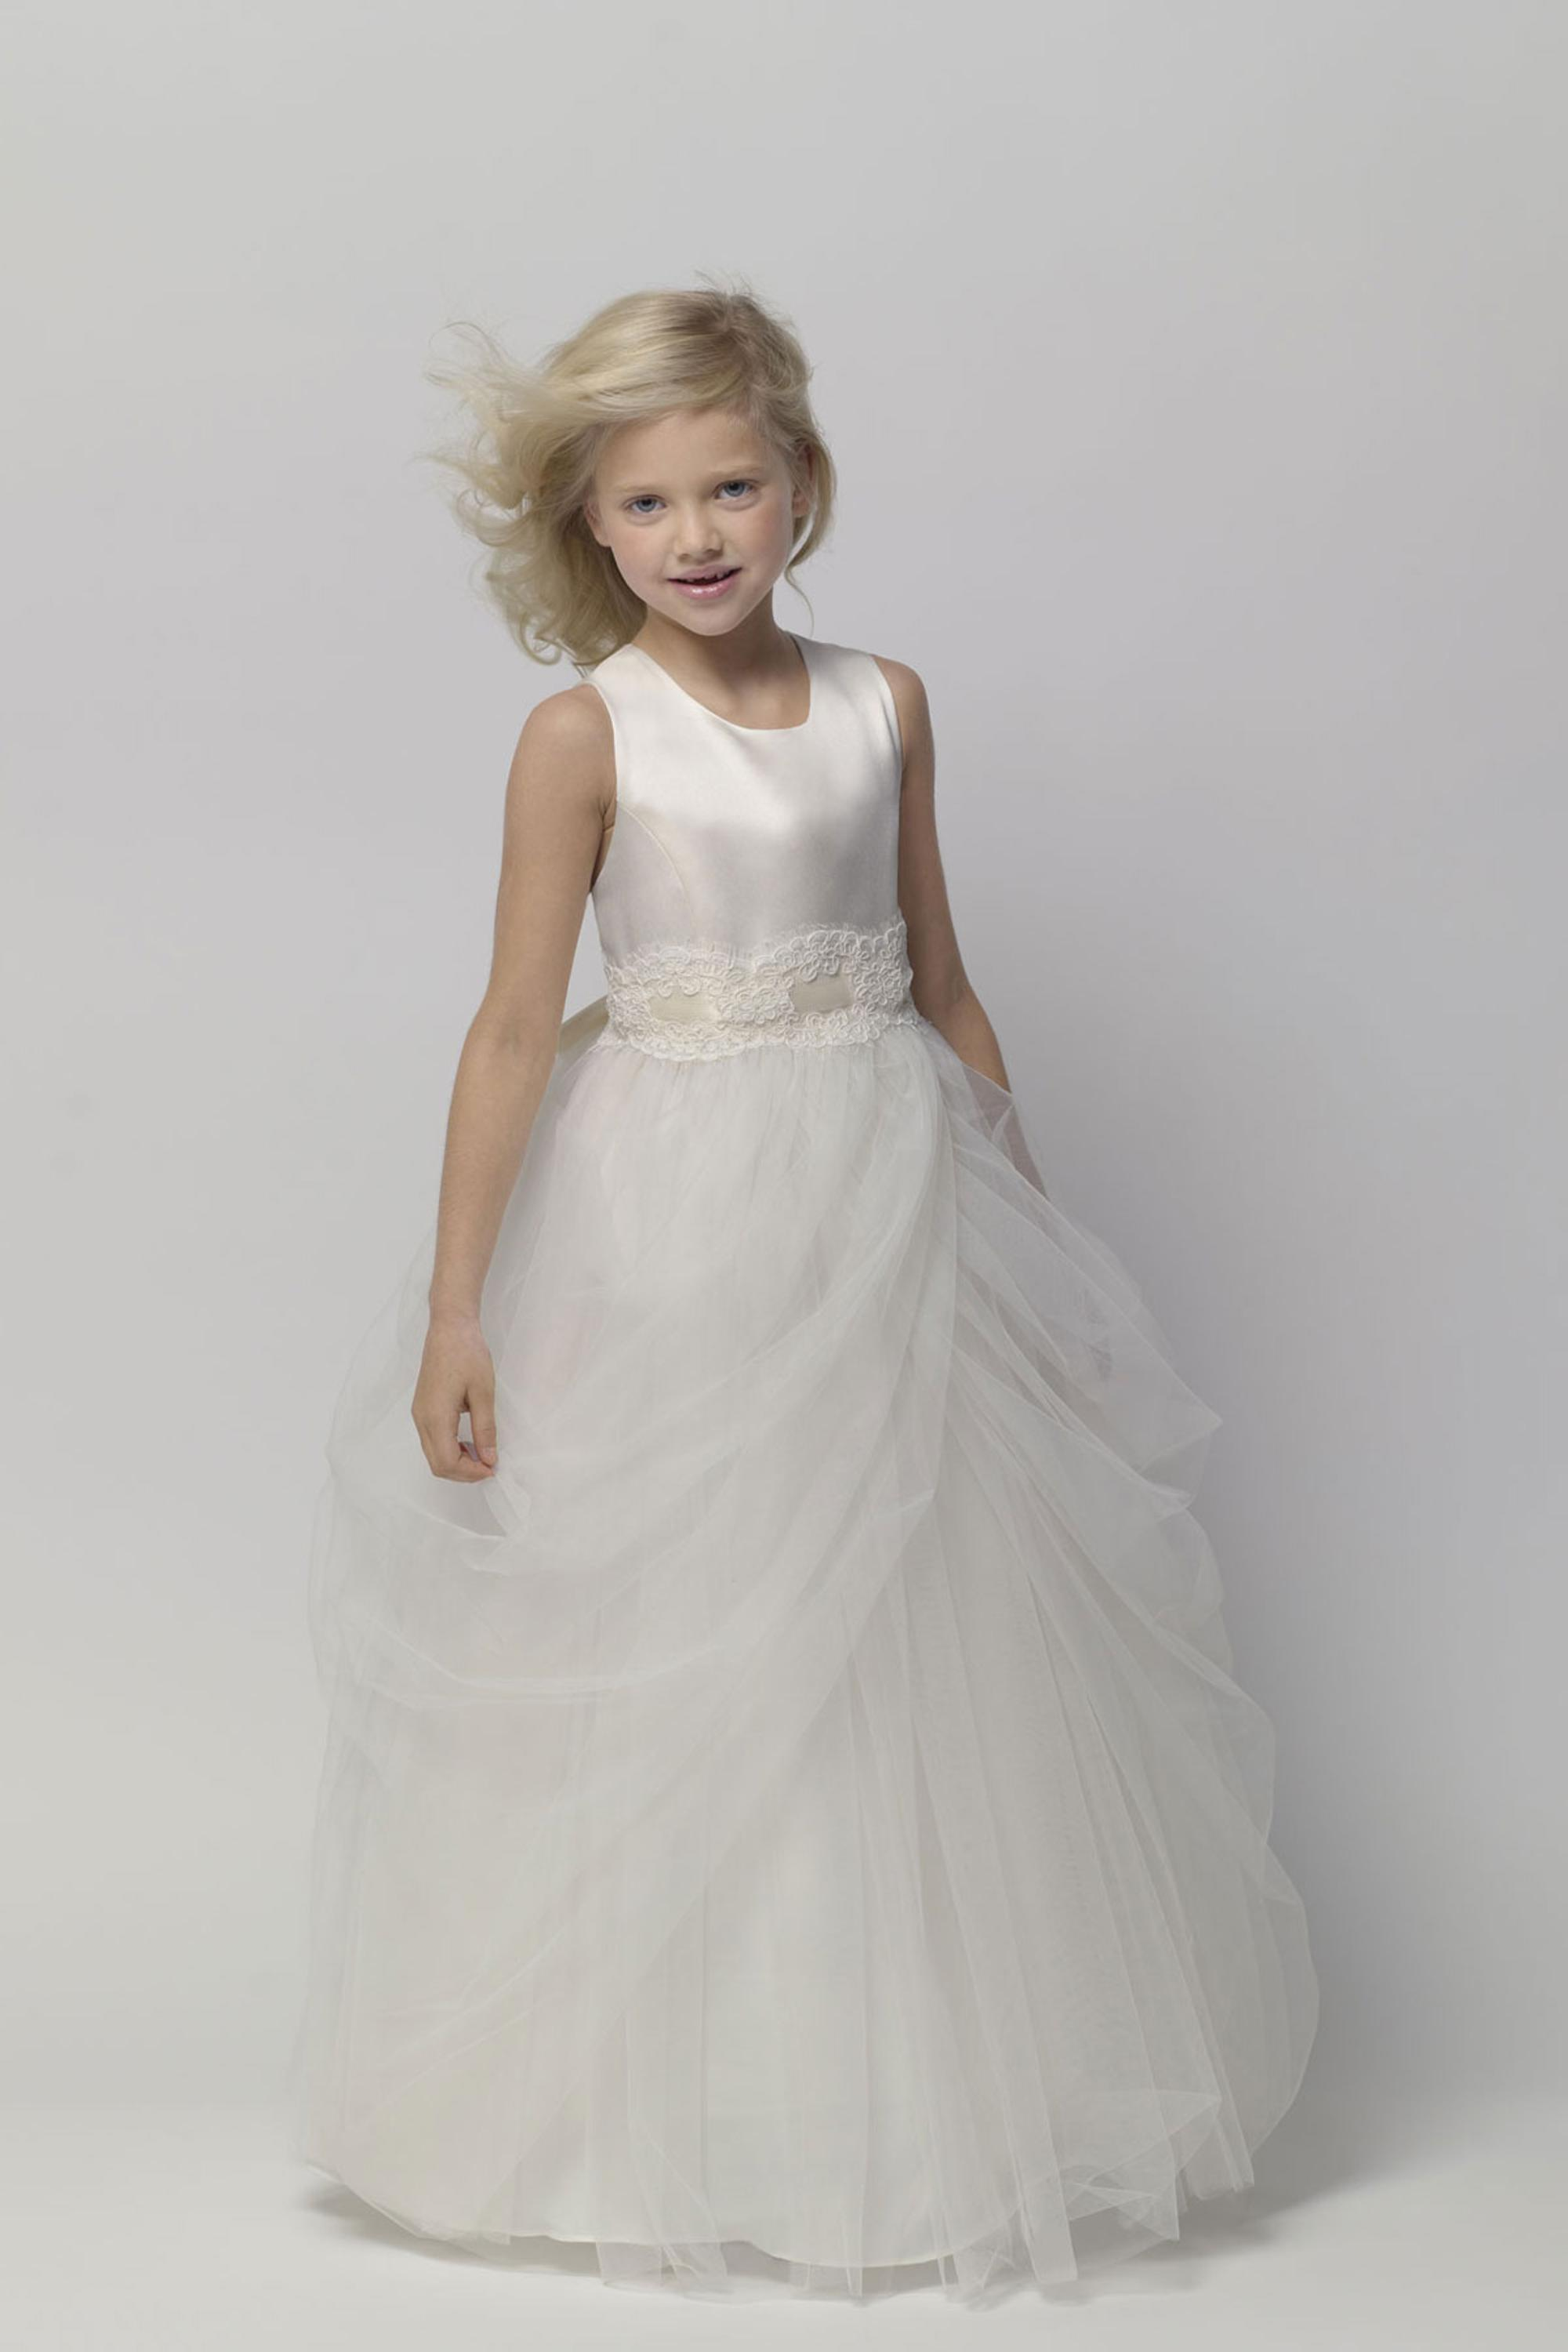 Flower Girls Dresses For Wedding Gowns White And Ivory Girl Birthday Party Dress Ankle-Length Mother Daughter Dresses For Girls new white ivory nice spaghetti straps sequined knee length a line flower girl dress beautiful square collar birthday party gowns